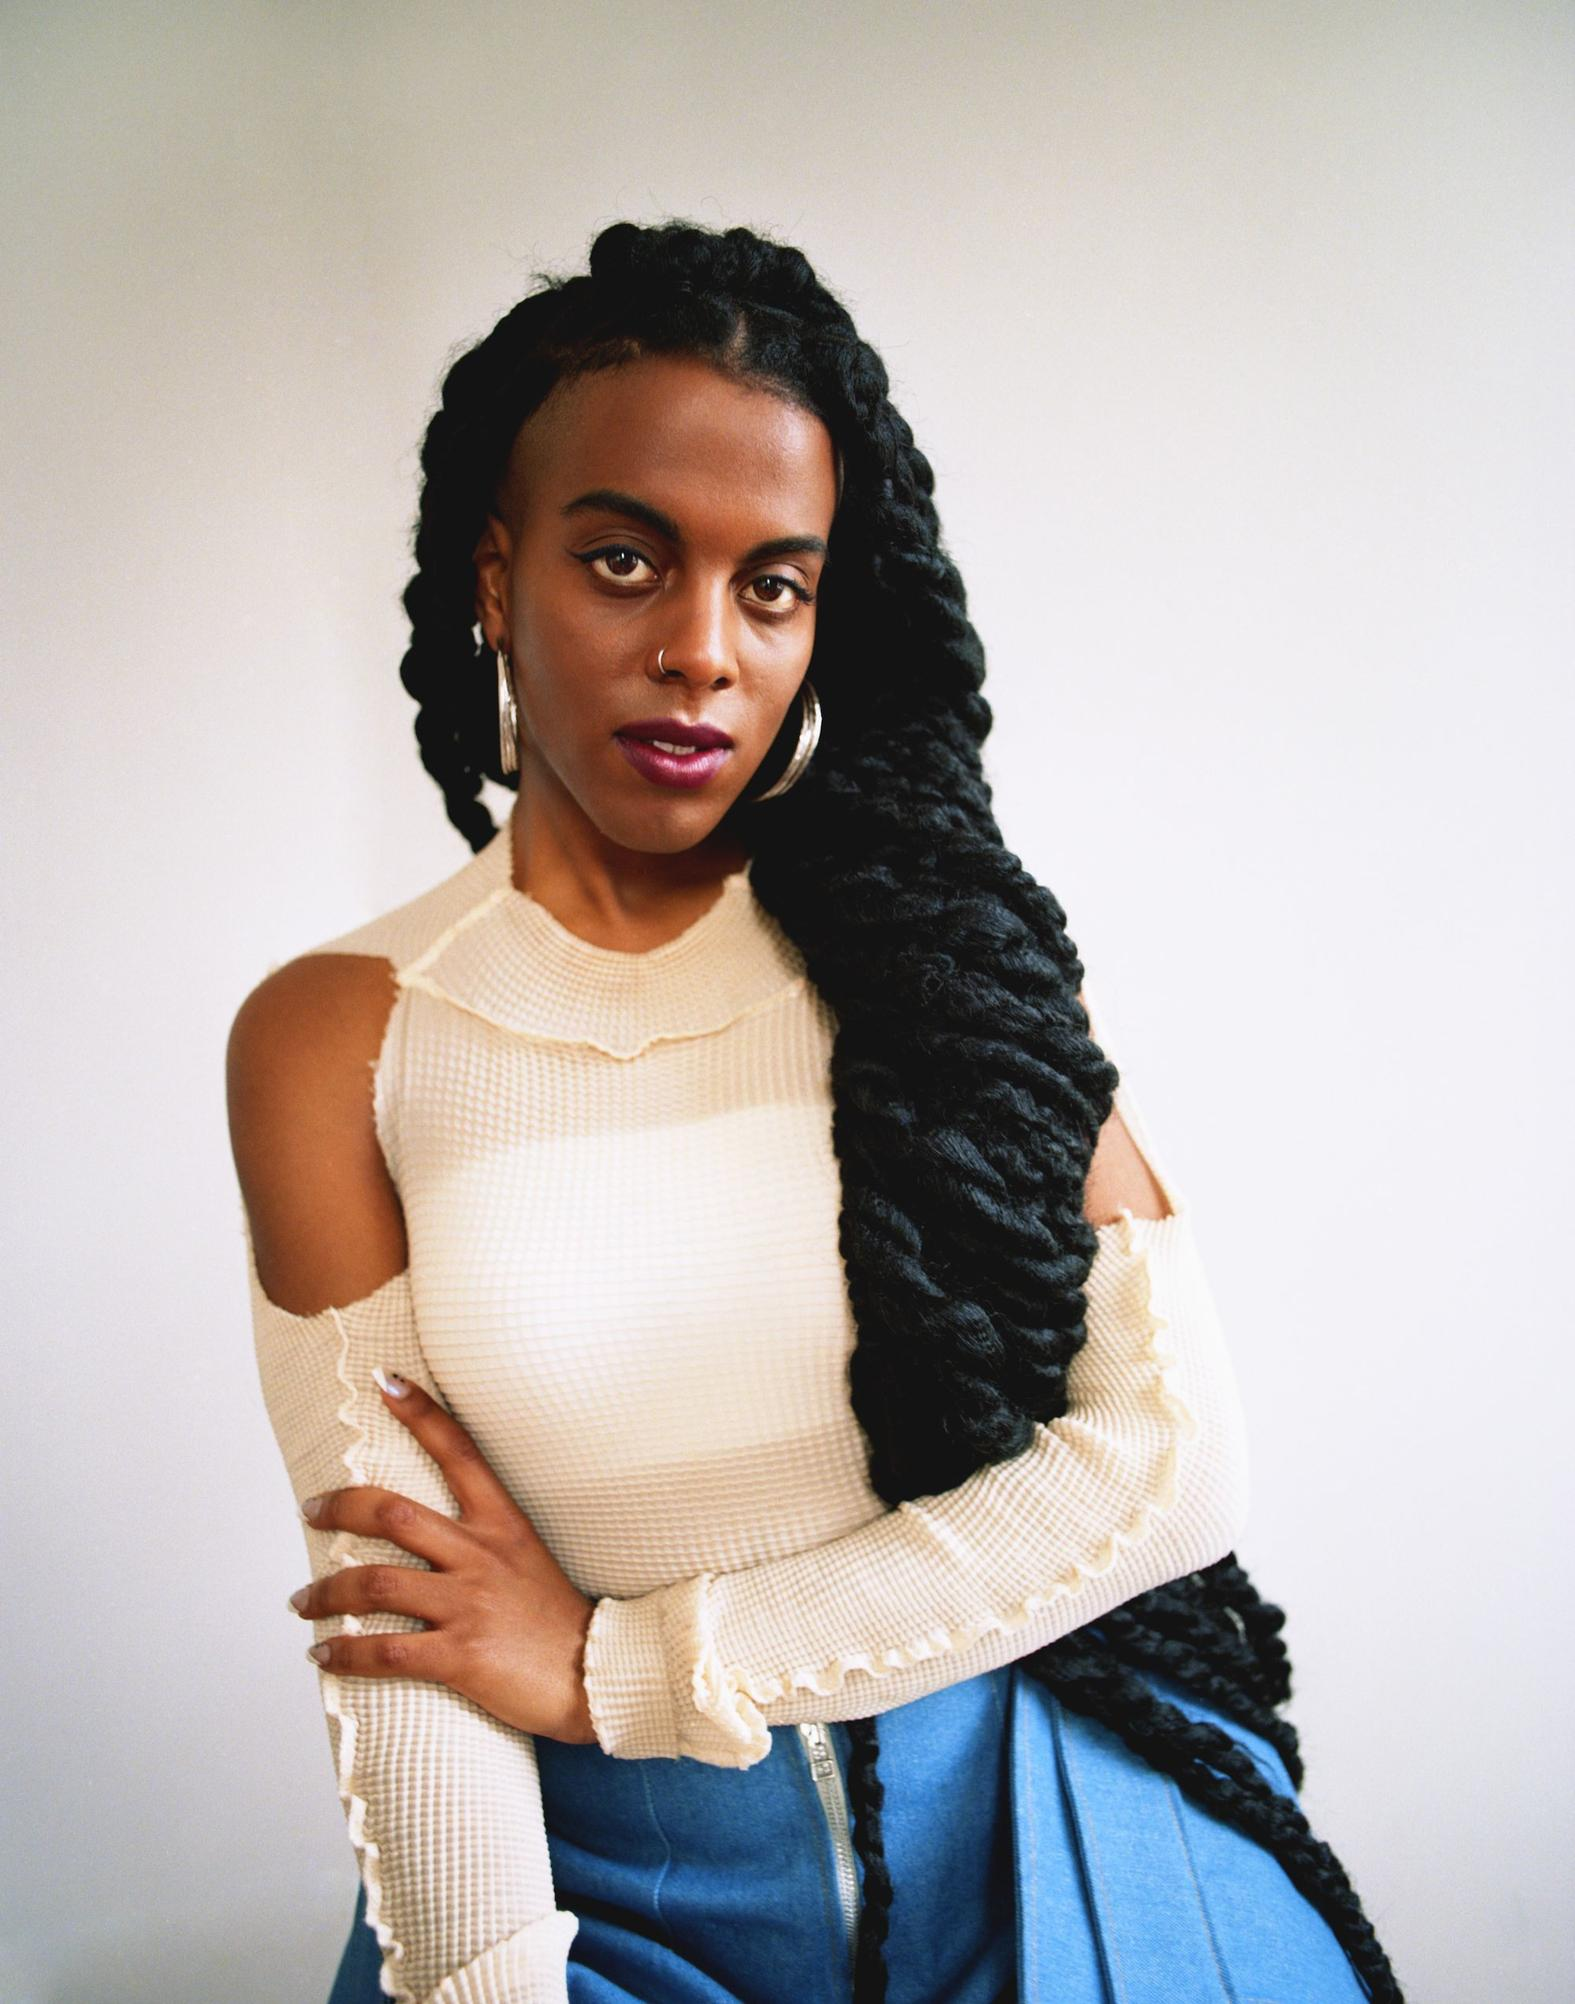 juliana-huxtable-body-image-1427210640